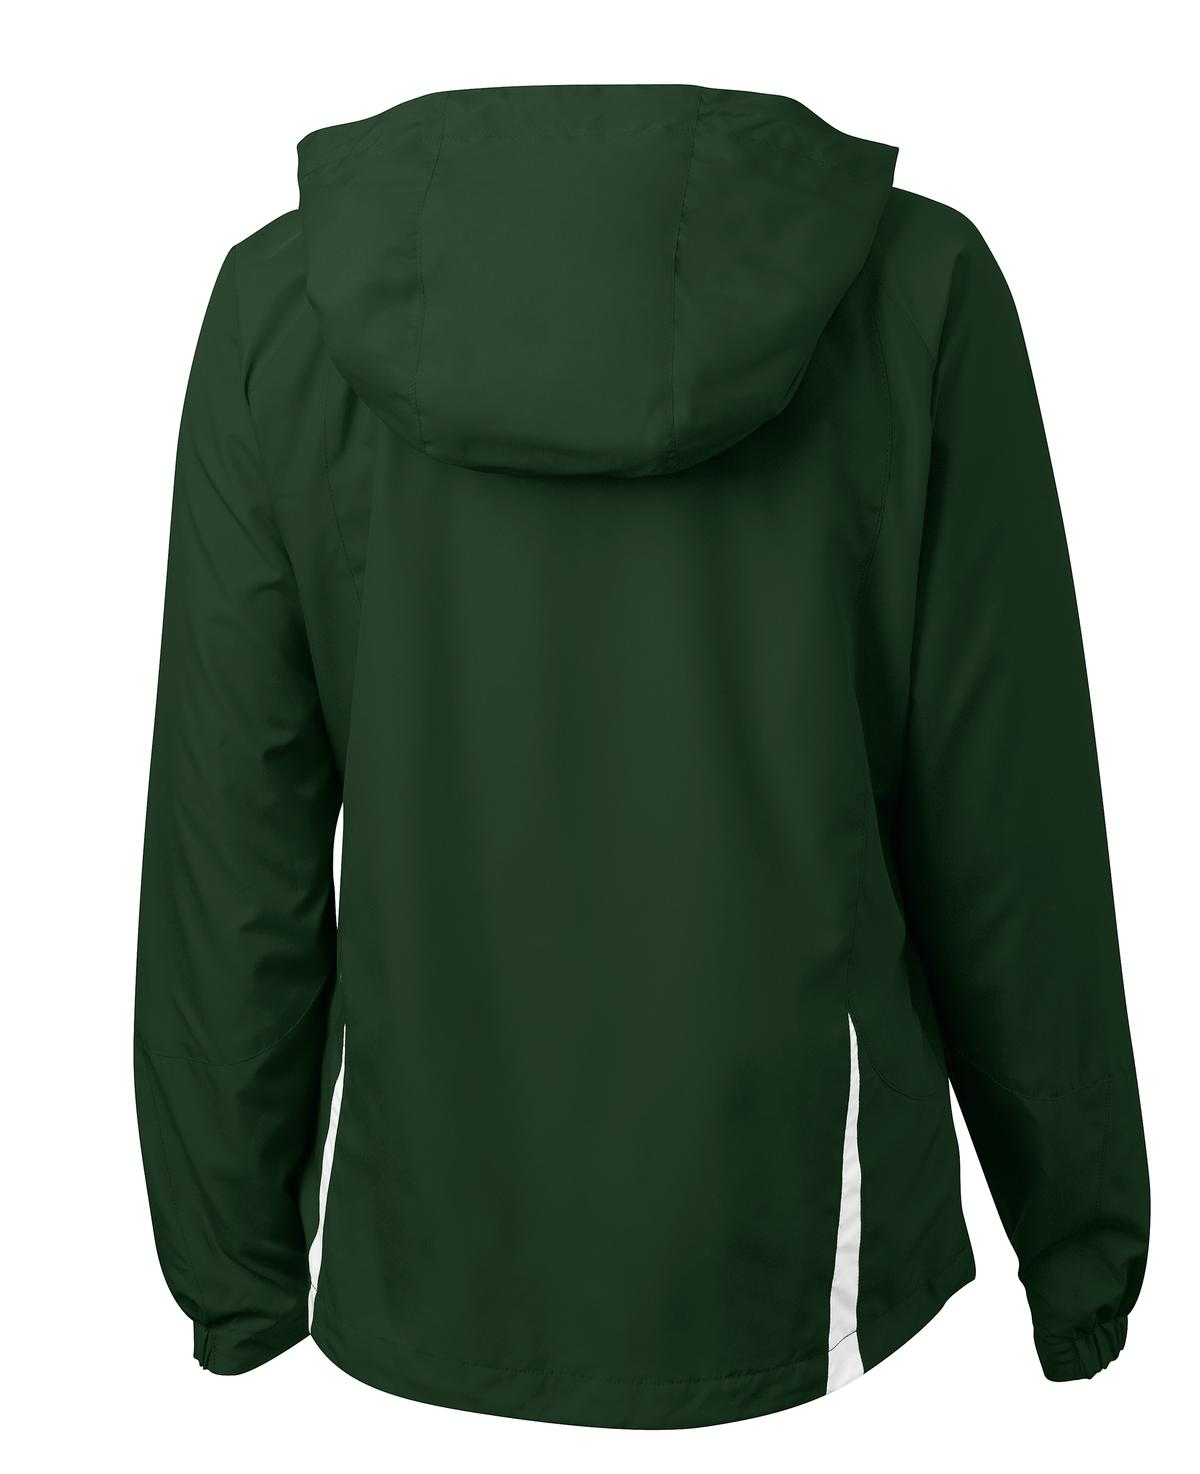 Mafoose Women's Colorblock Hooded Raglan Jacket Forest Green/White-Back